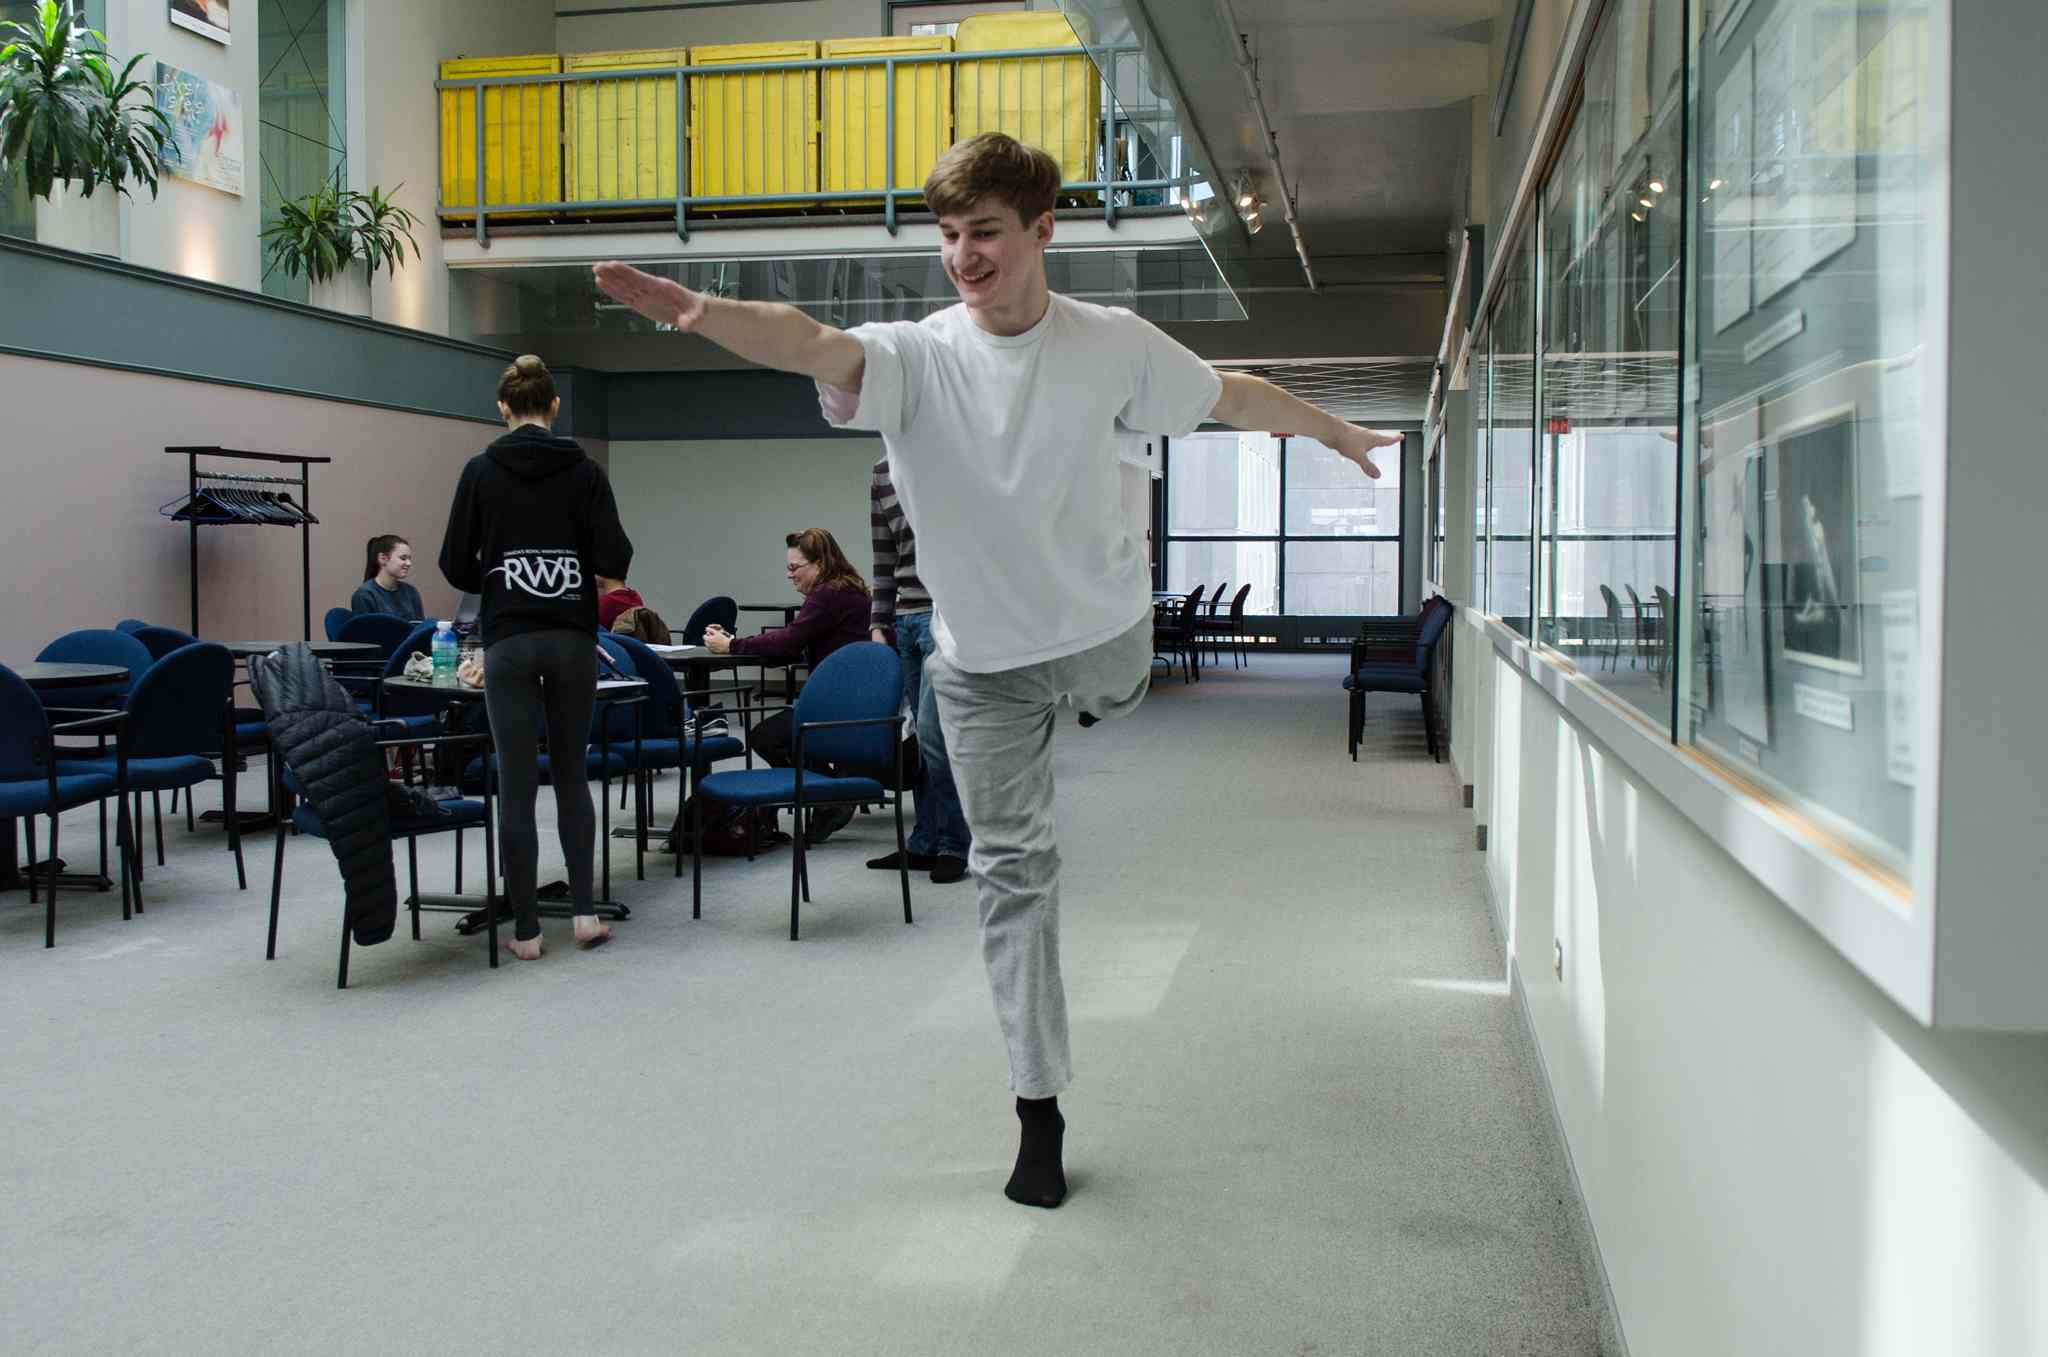 Madison Edbom, 17, jumps in the air after his audition at the Royal Winnipeg Ballet school.